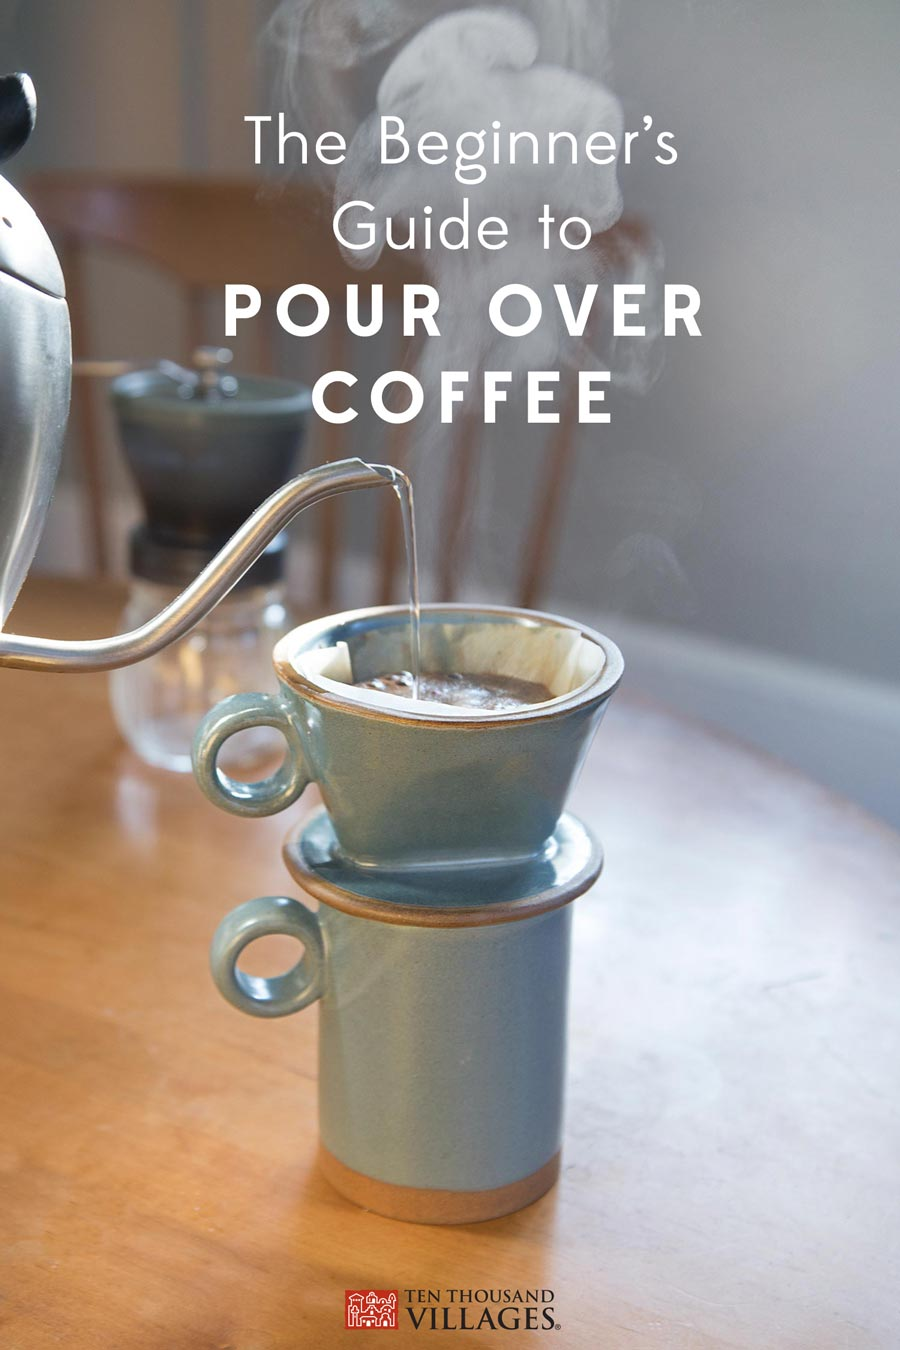 The Beginner's Guide to Pour Over coffee — Ten Thousand Villages — Handmade Mug & Dripper